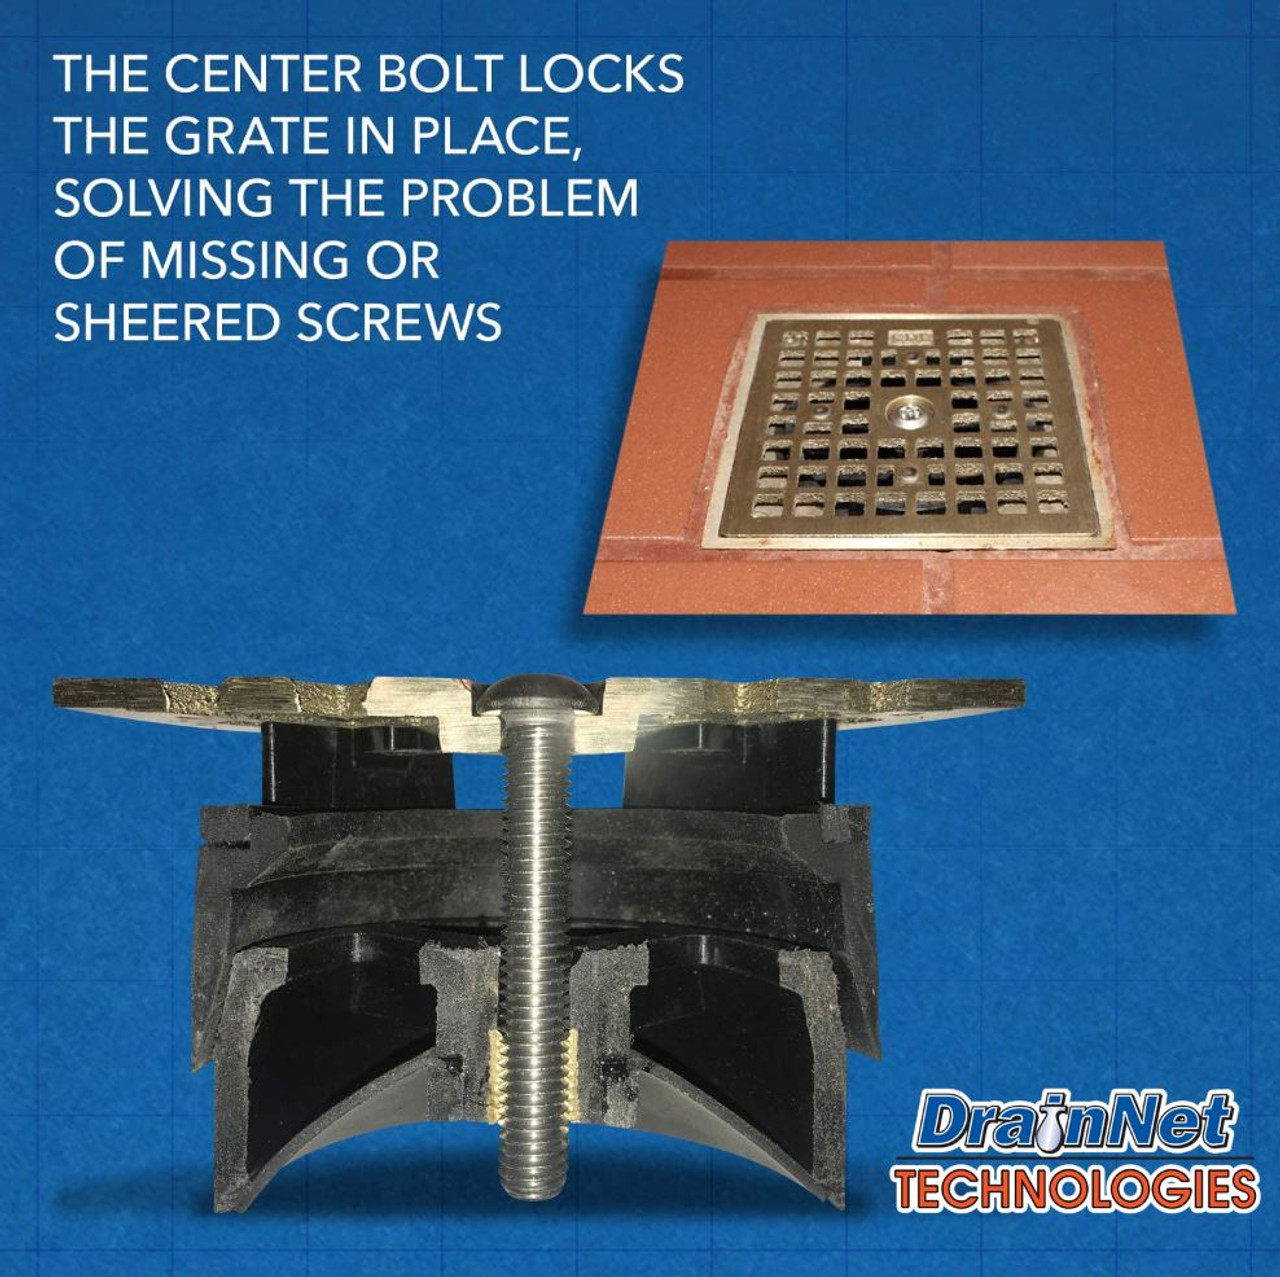 LockOut - Locking Floor Drain Replacement Grate With Odor and Bug Blocking Valve | Blocks Sewer Gas Odors, Bugs